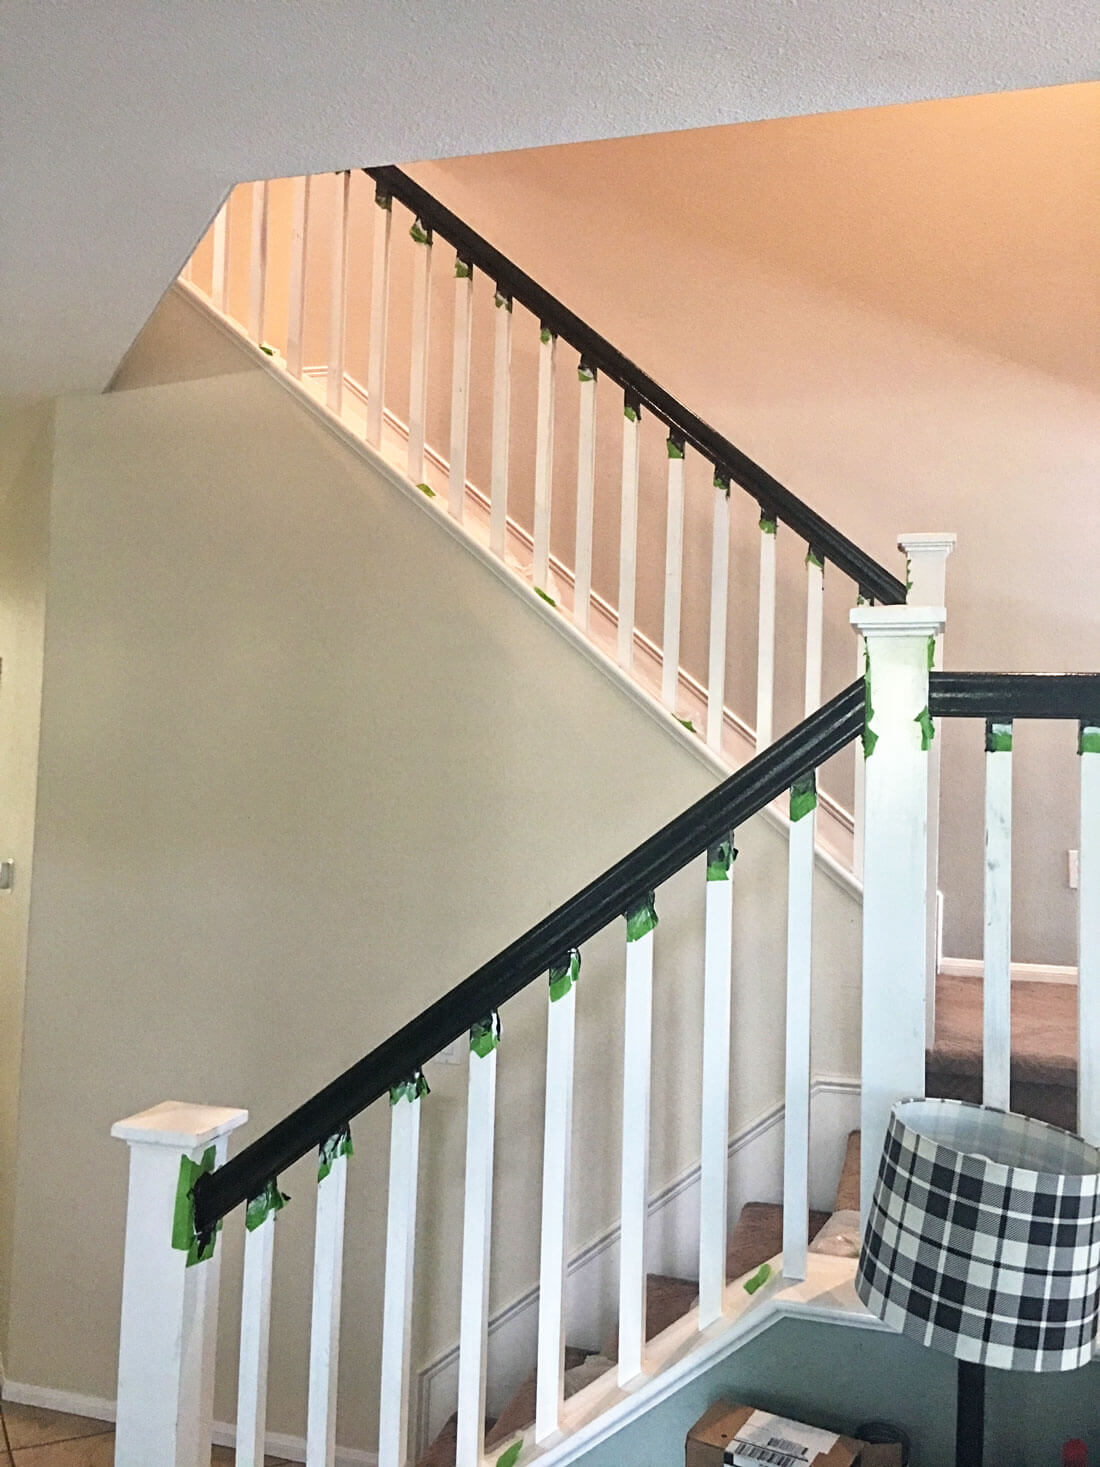 How to paint your stair railings and banister - painting the spindles